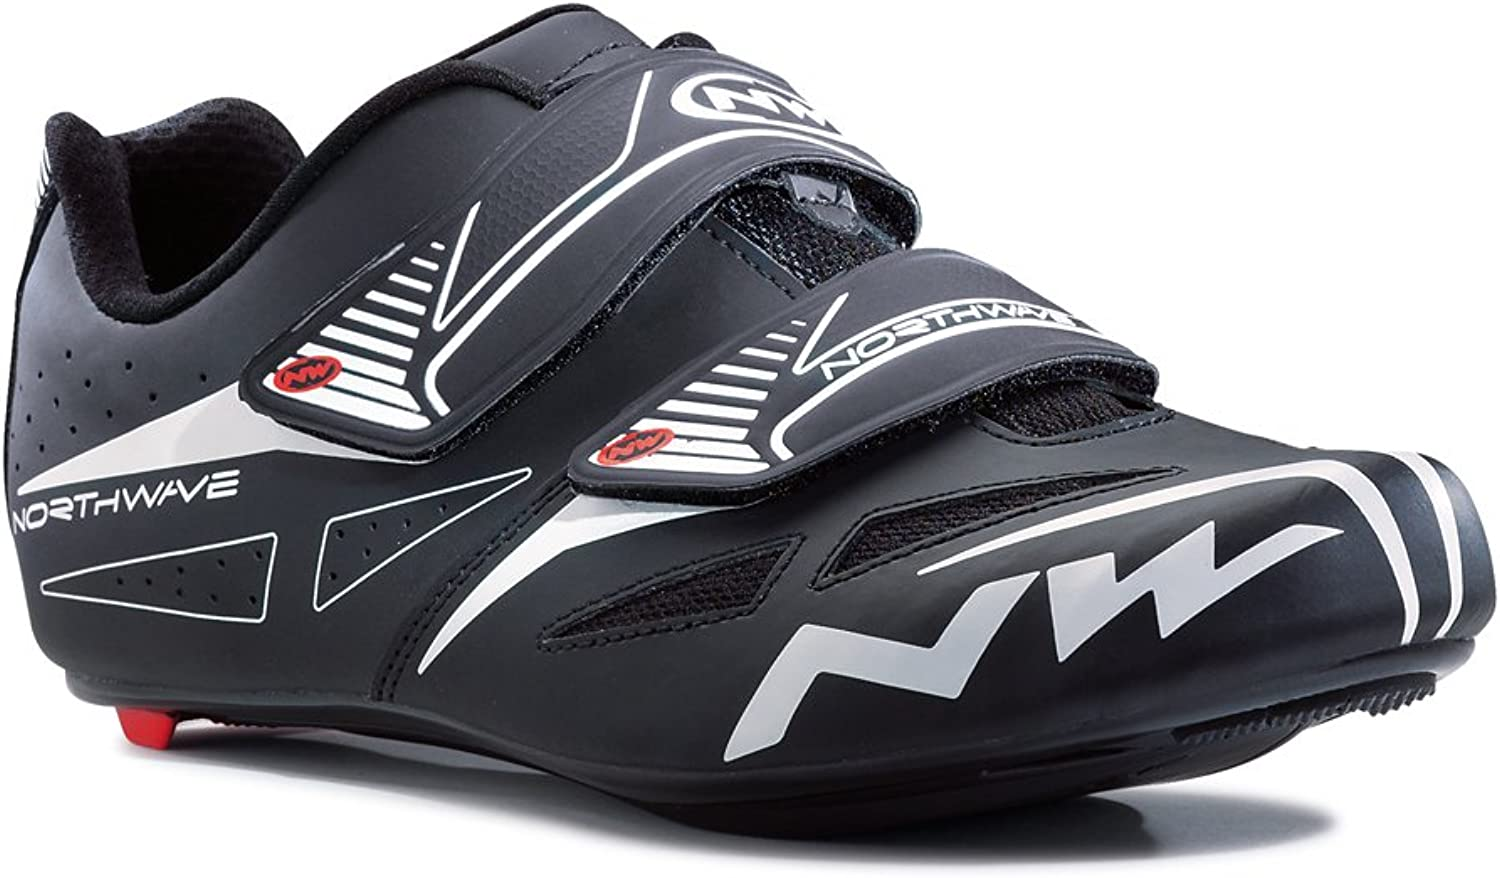 Northwave Jet Evo Road shoes